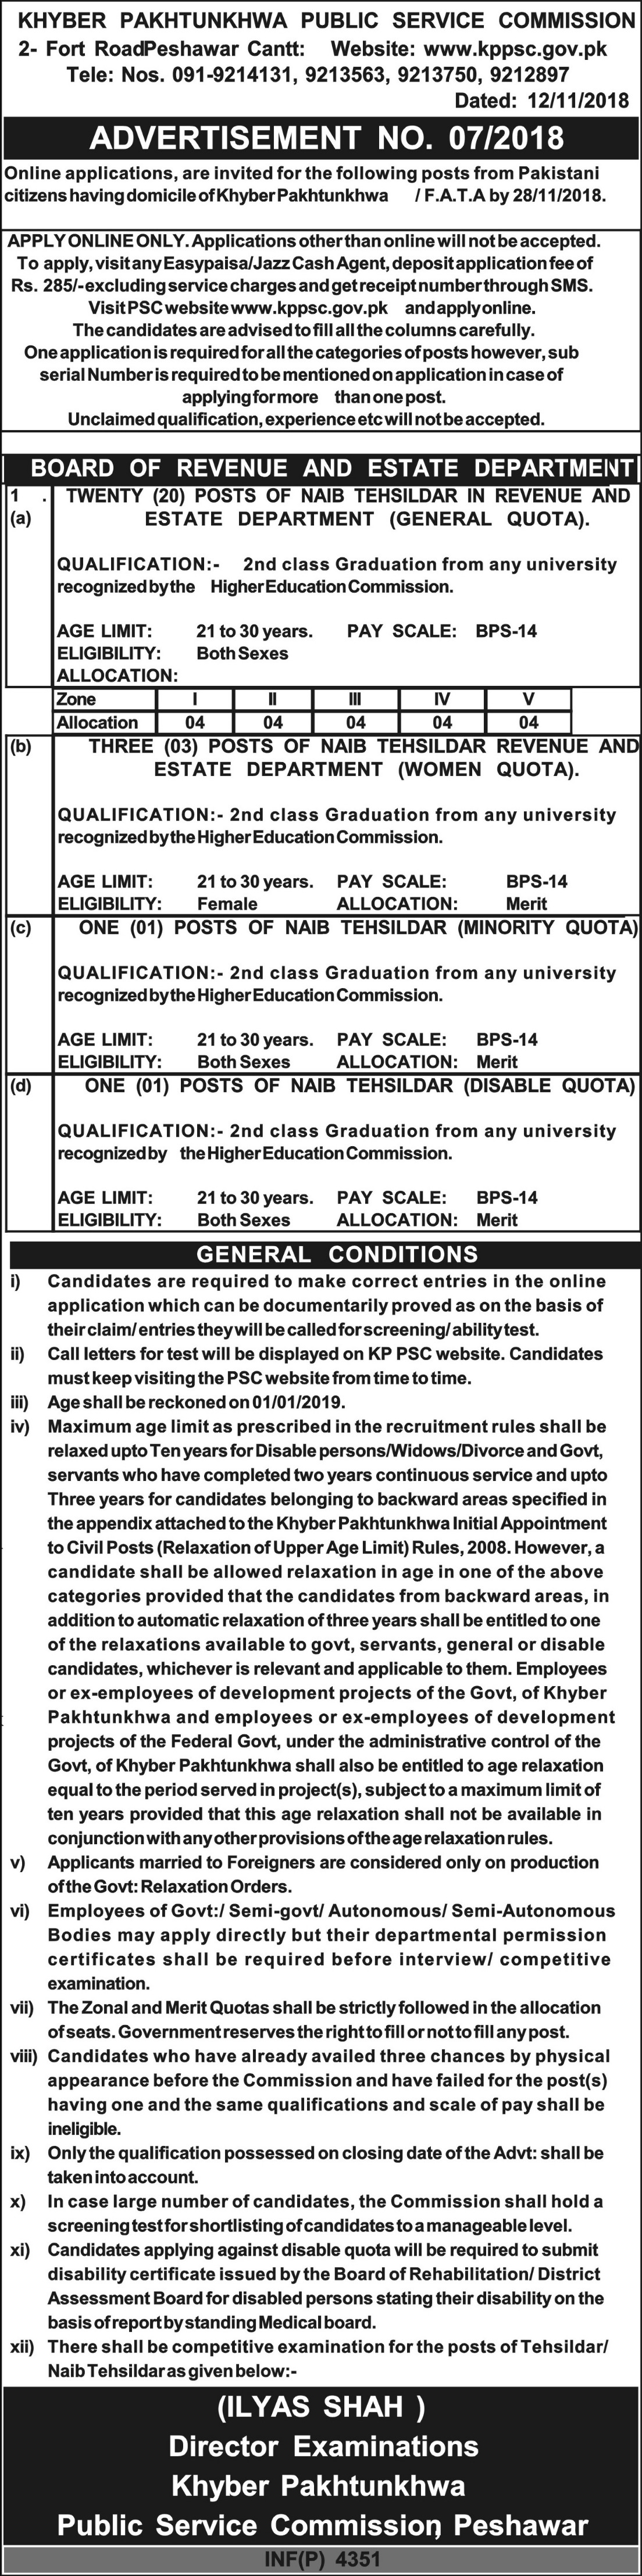 KPPSC Jobs Latest November 2018